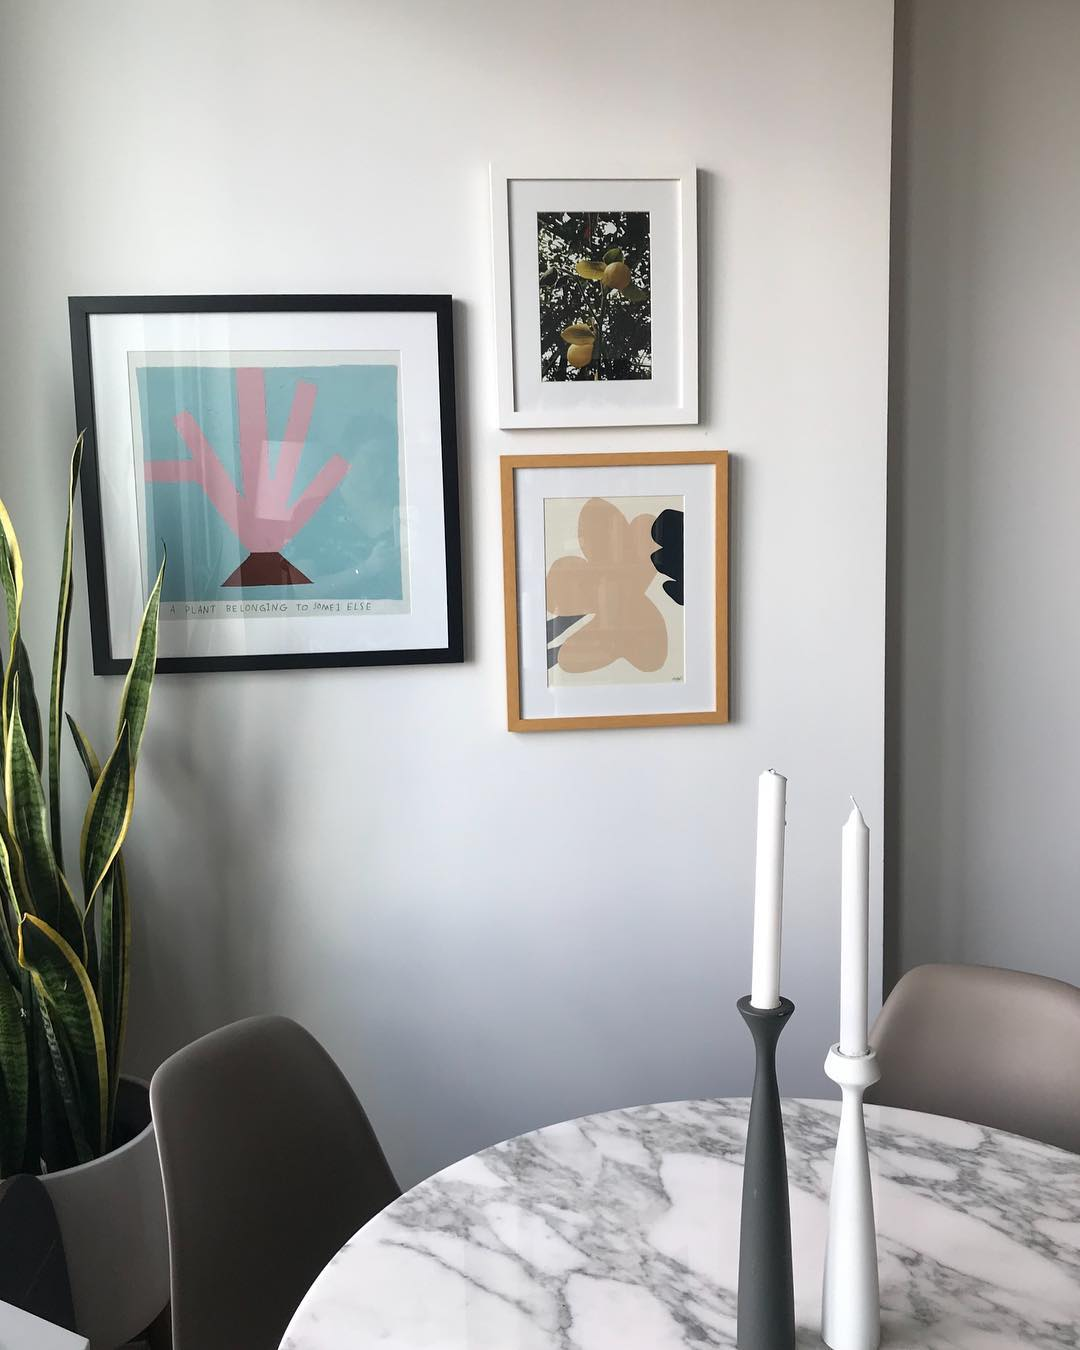 A print in the home of editor   KELLY GALLAGHER  .